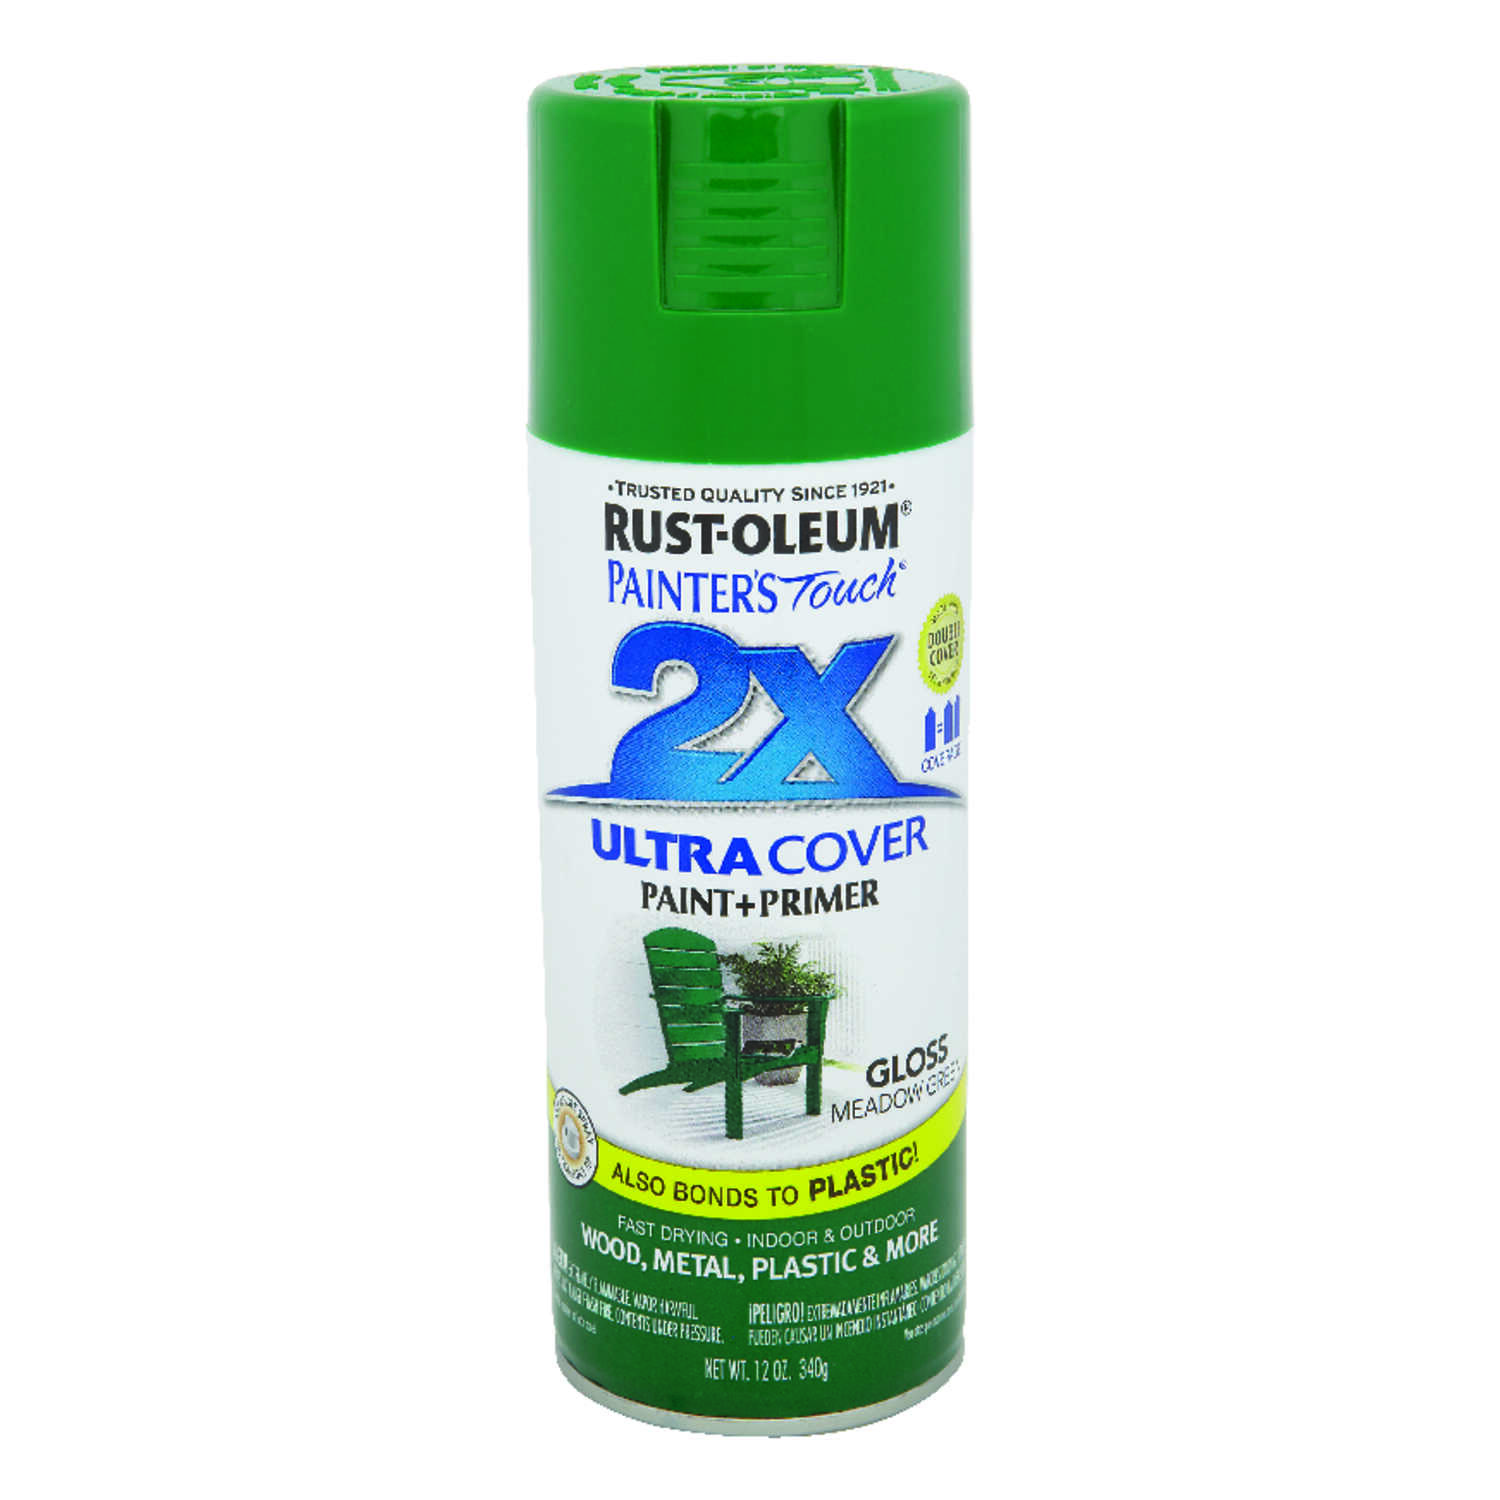 Rust-Oleum  Painter's Touch Ultra Cover  Gloss  Meadow Green  Spray Paint  12 oz.